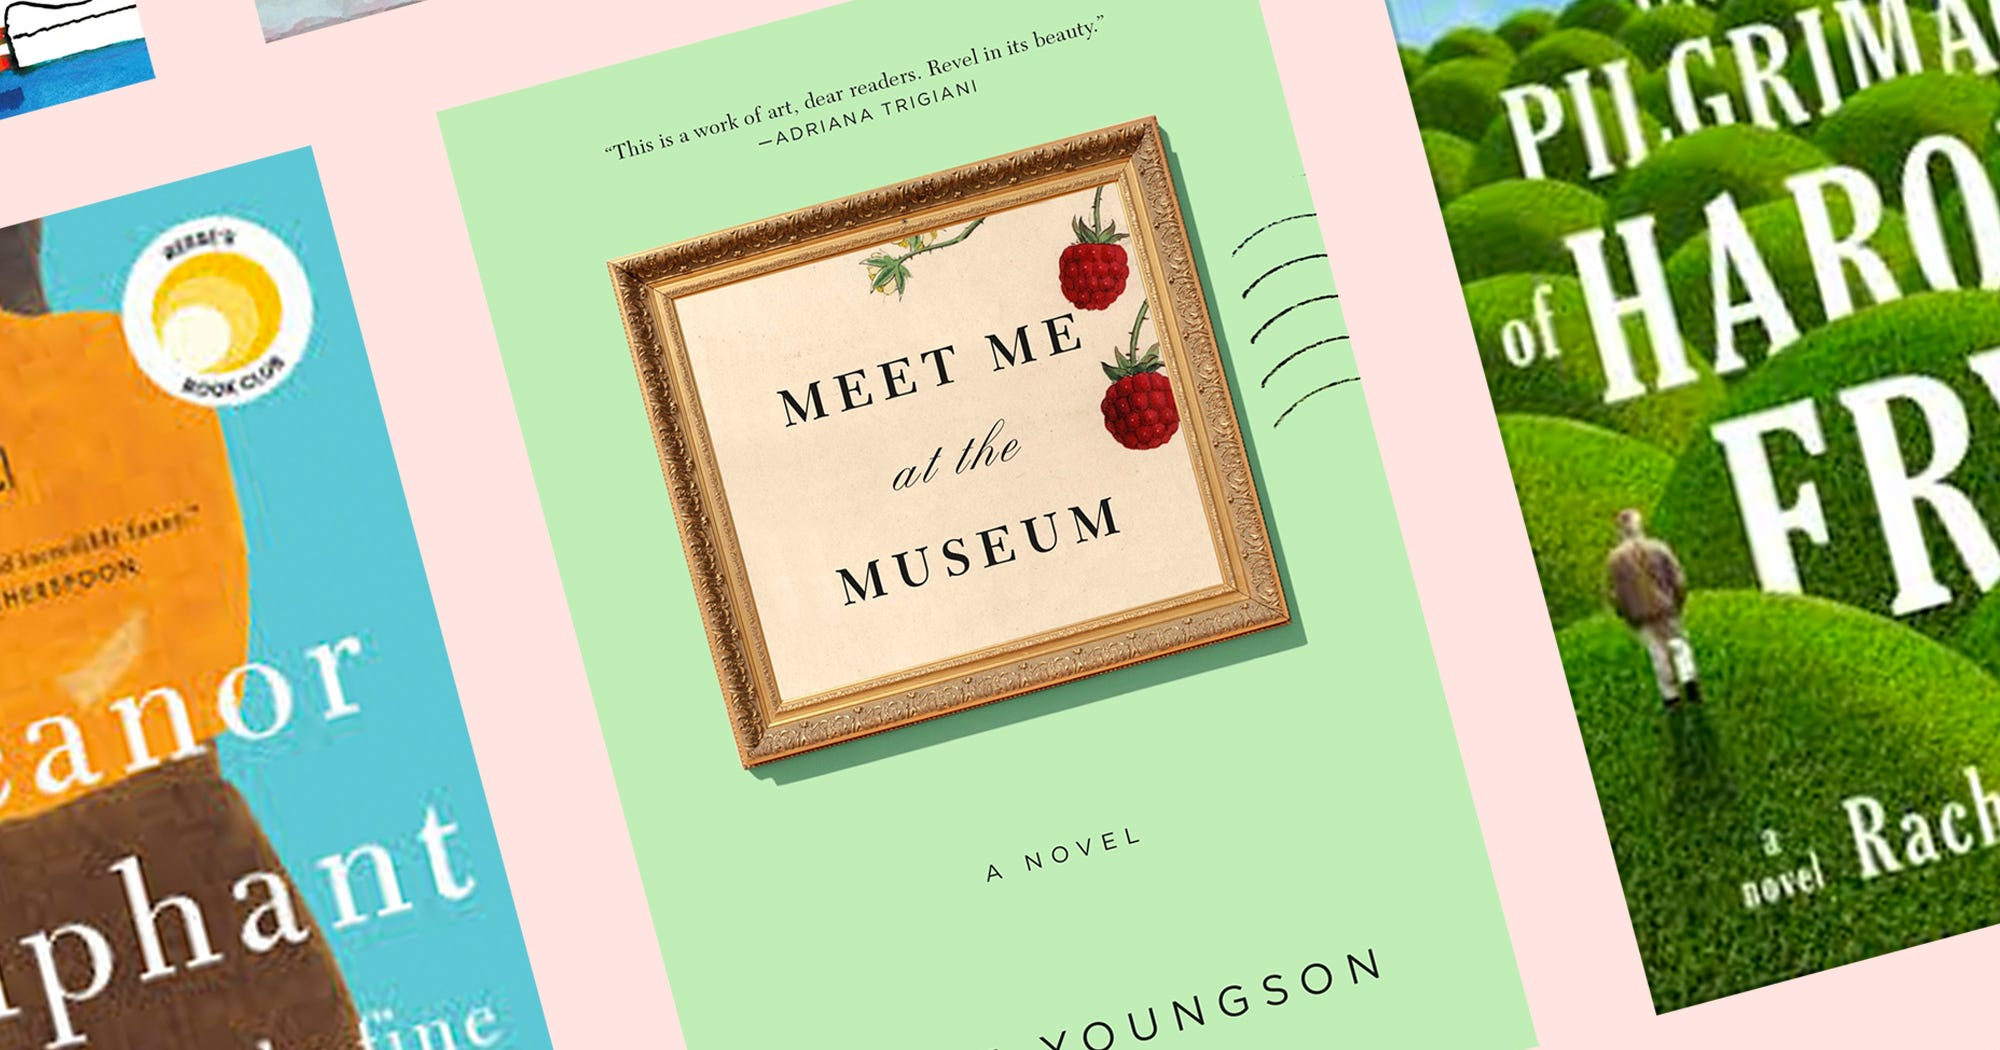 Meet Up Lit, The Book Genre Designed To Lift Your Spirits